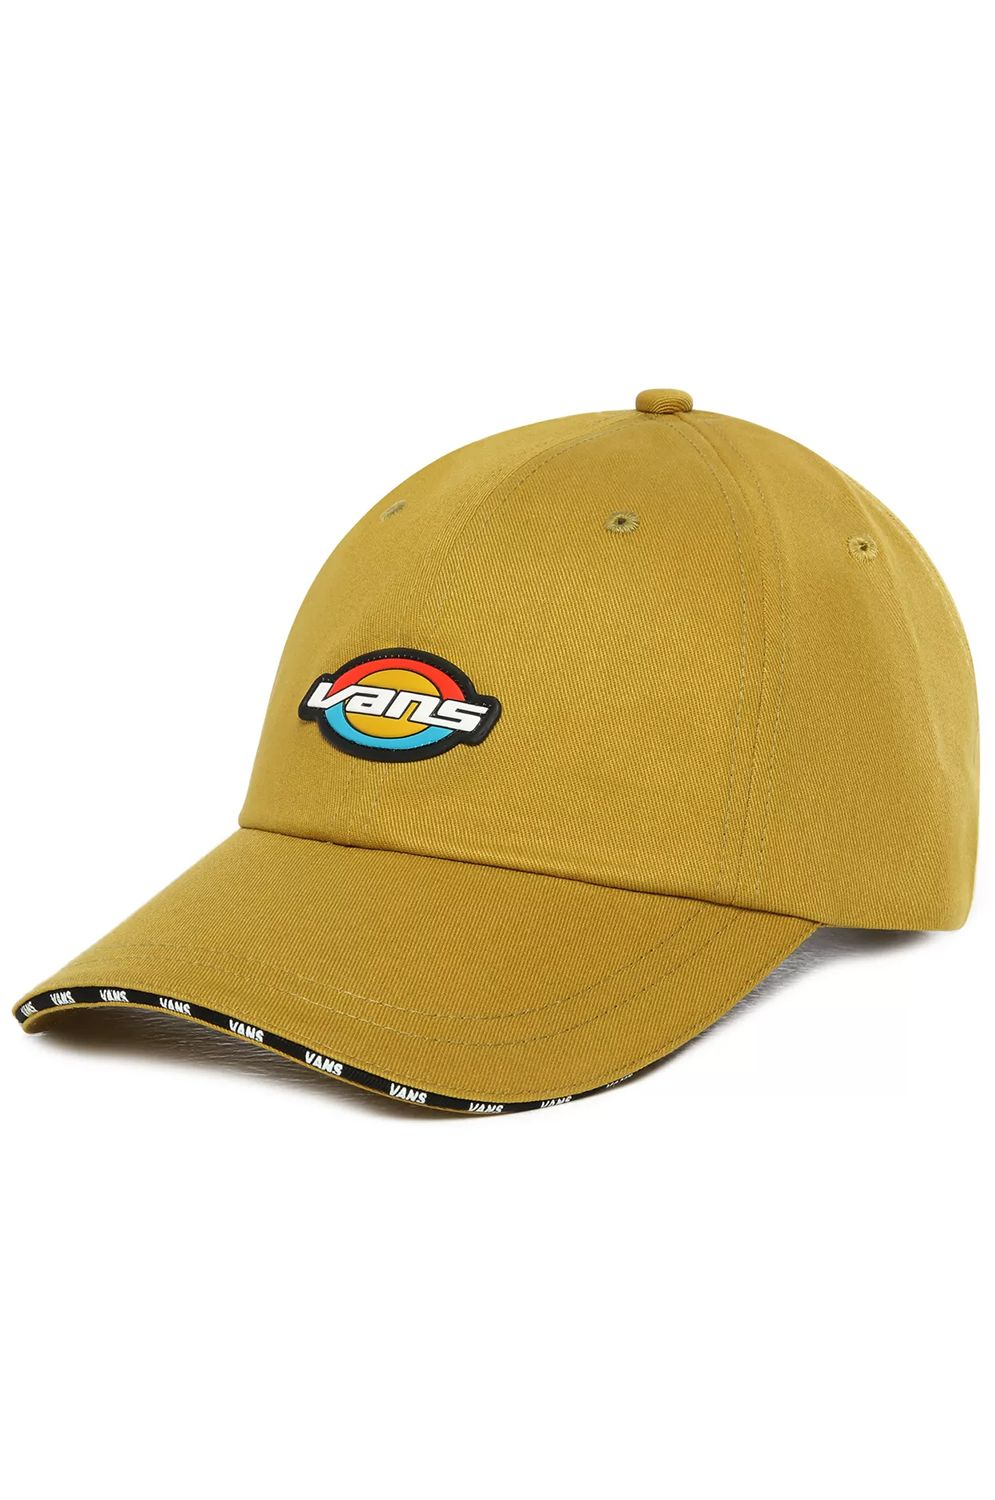 Bone Vans LOW RIDER HAT Olive Oil